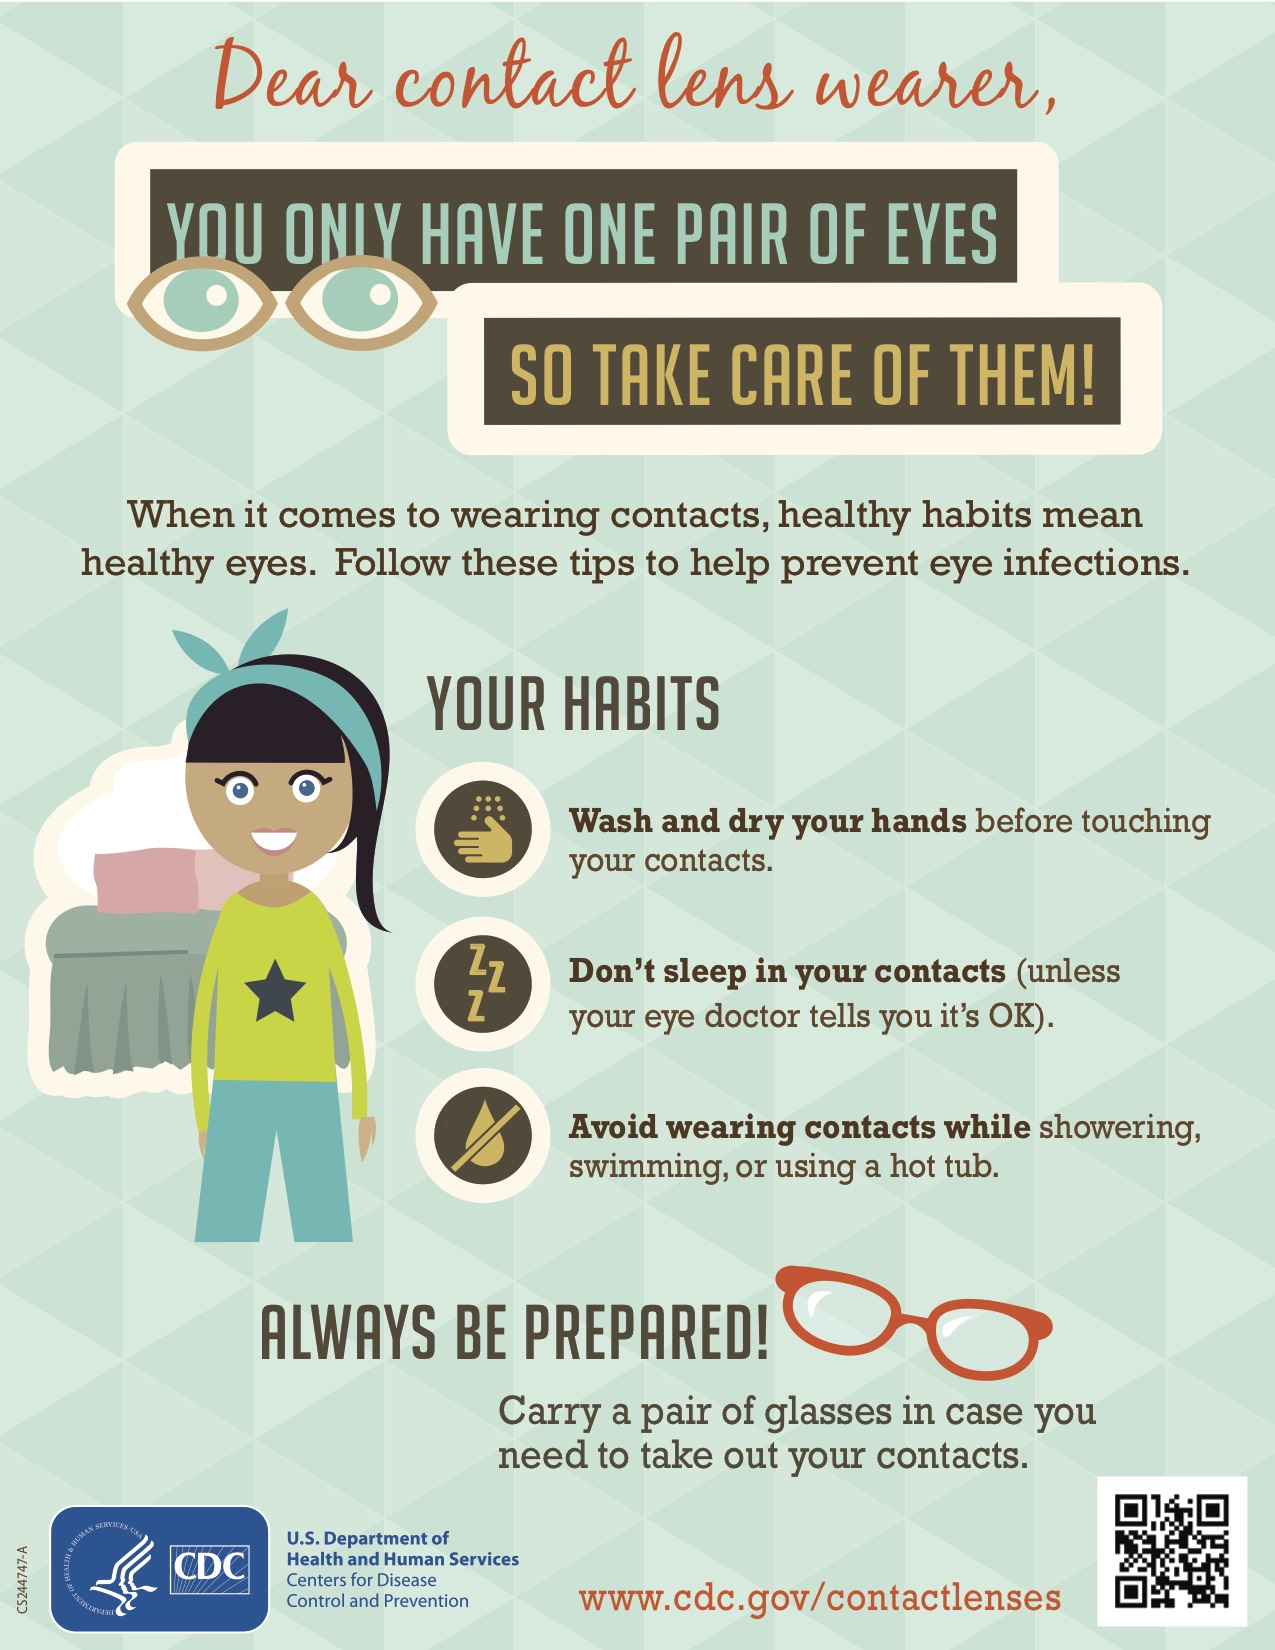 contact-lens-infographic-habits-508.jpg